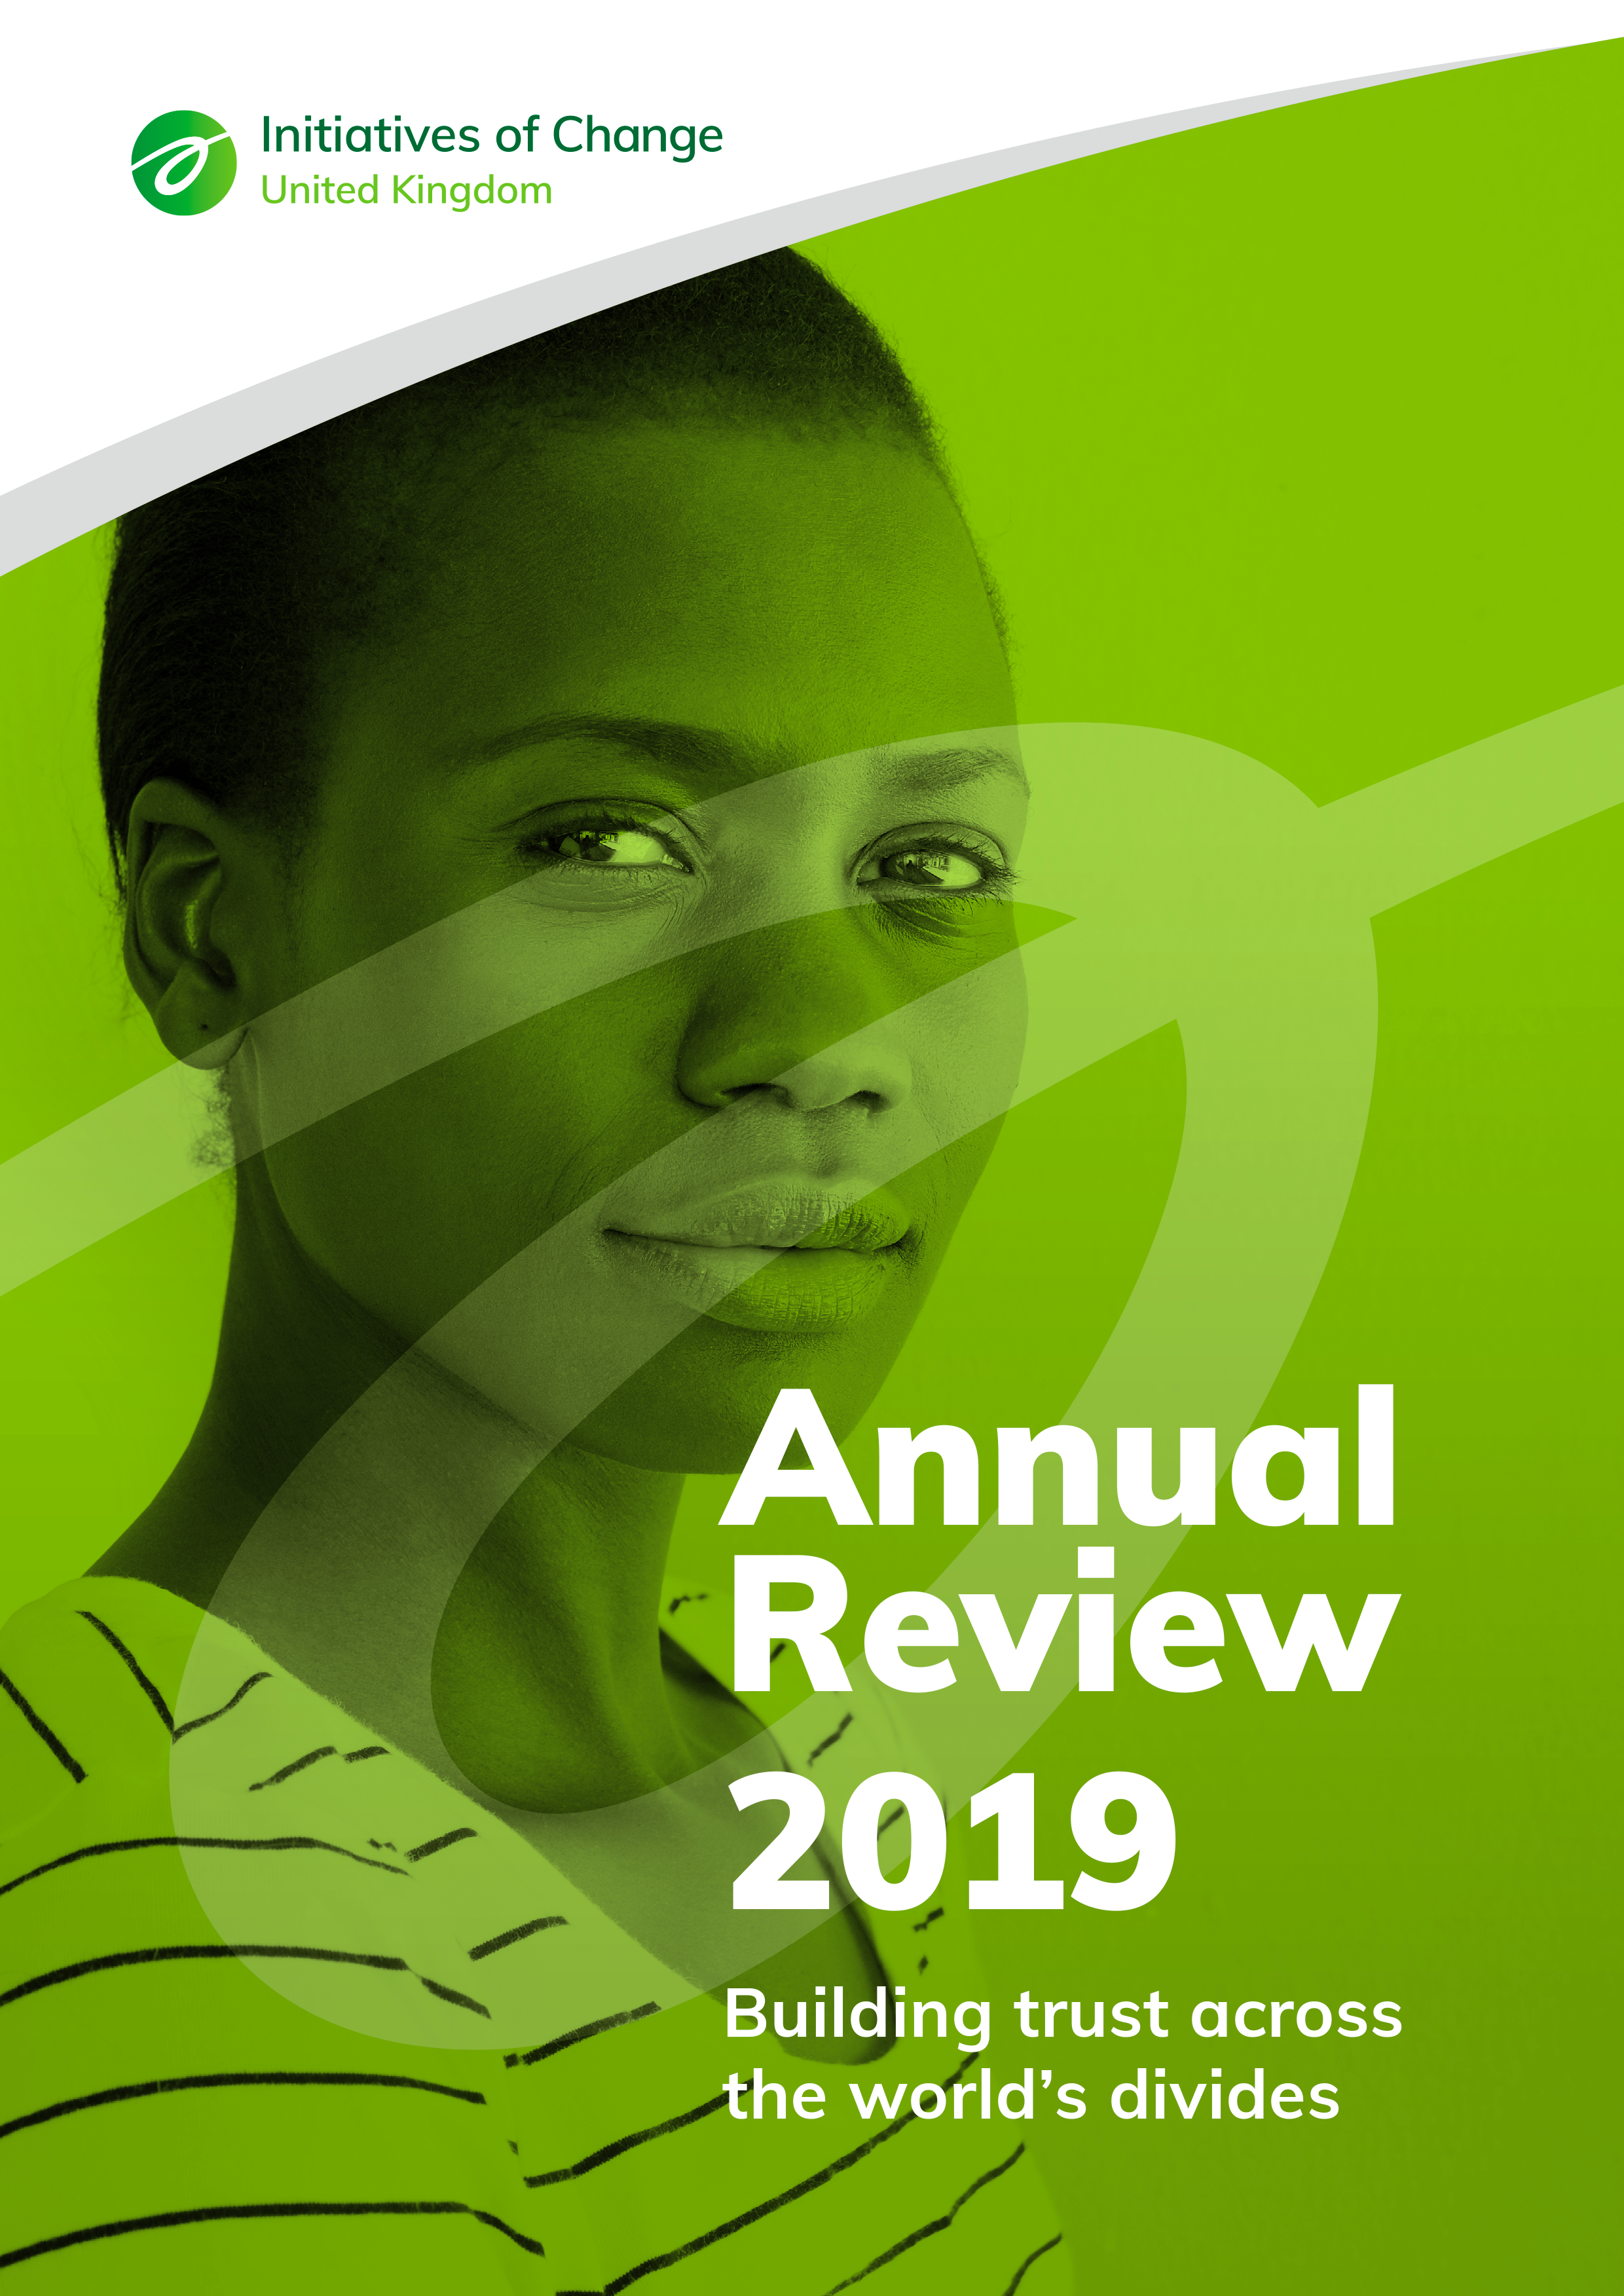 Initiatives of Change UK 2019 Annual Review